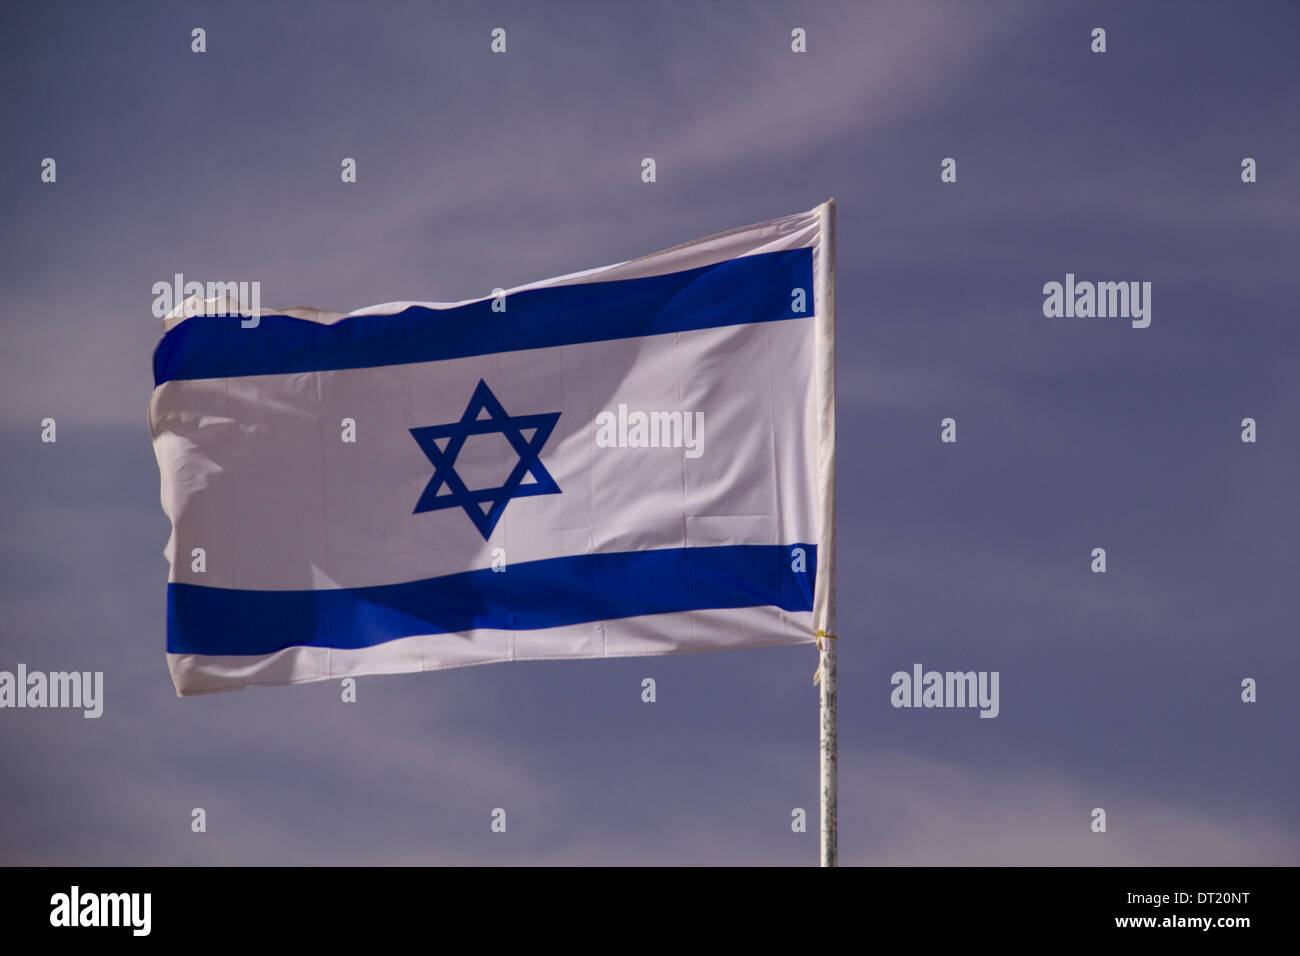 The blue and white national flag of Israel blowing in the wind. - Stock Image